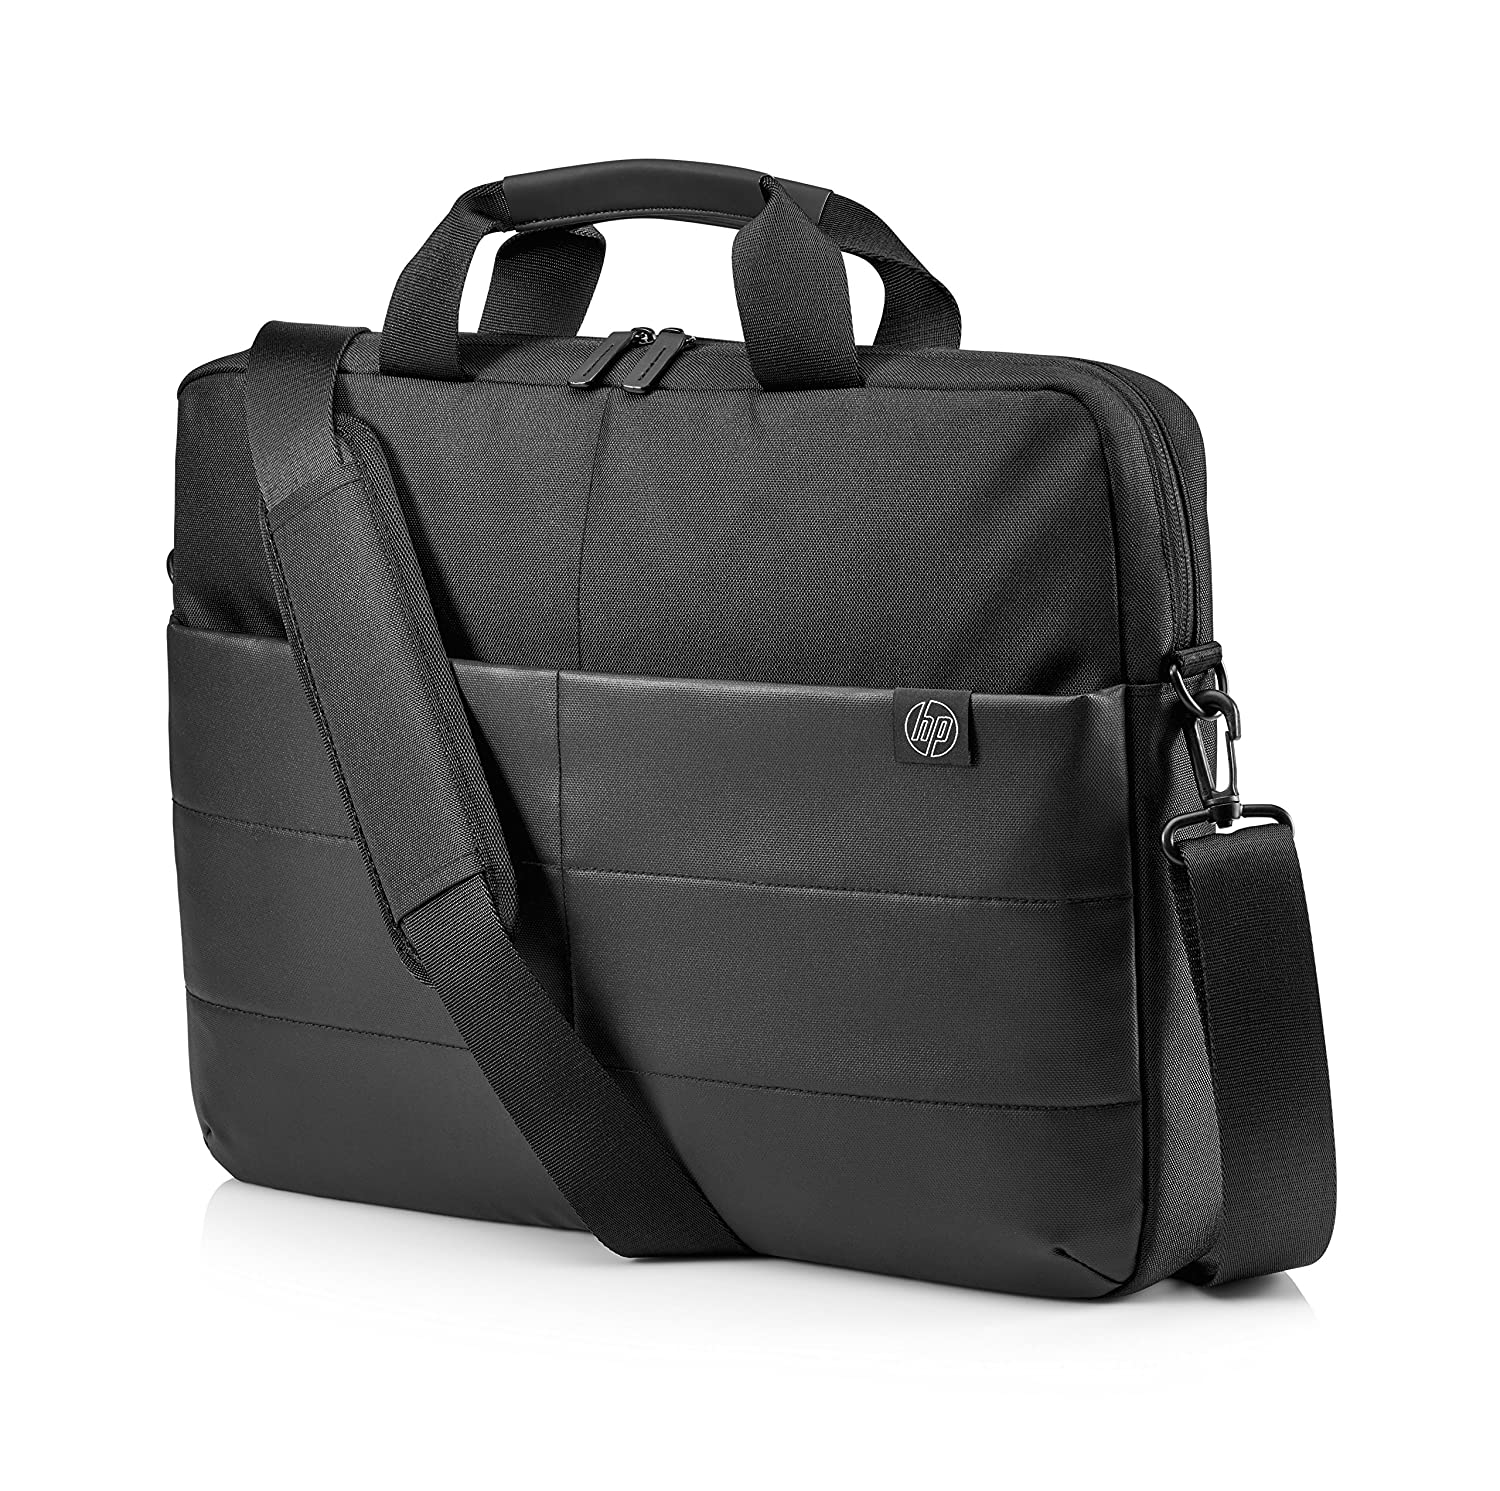 HP 1FK07AA 39.62 cm Classic Briefcase for 15.6-Inch Laptop - Click Image to Close